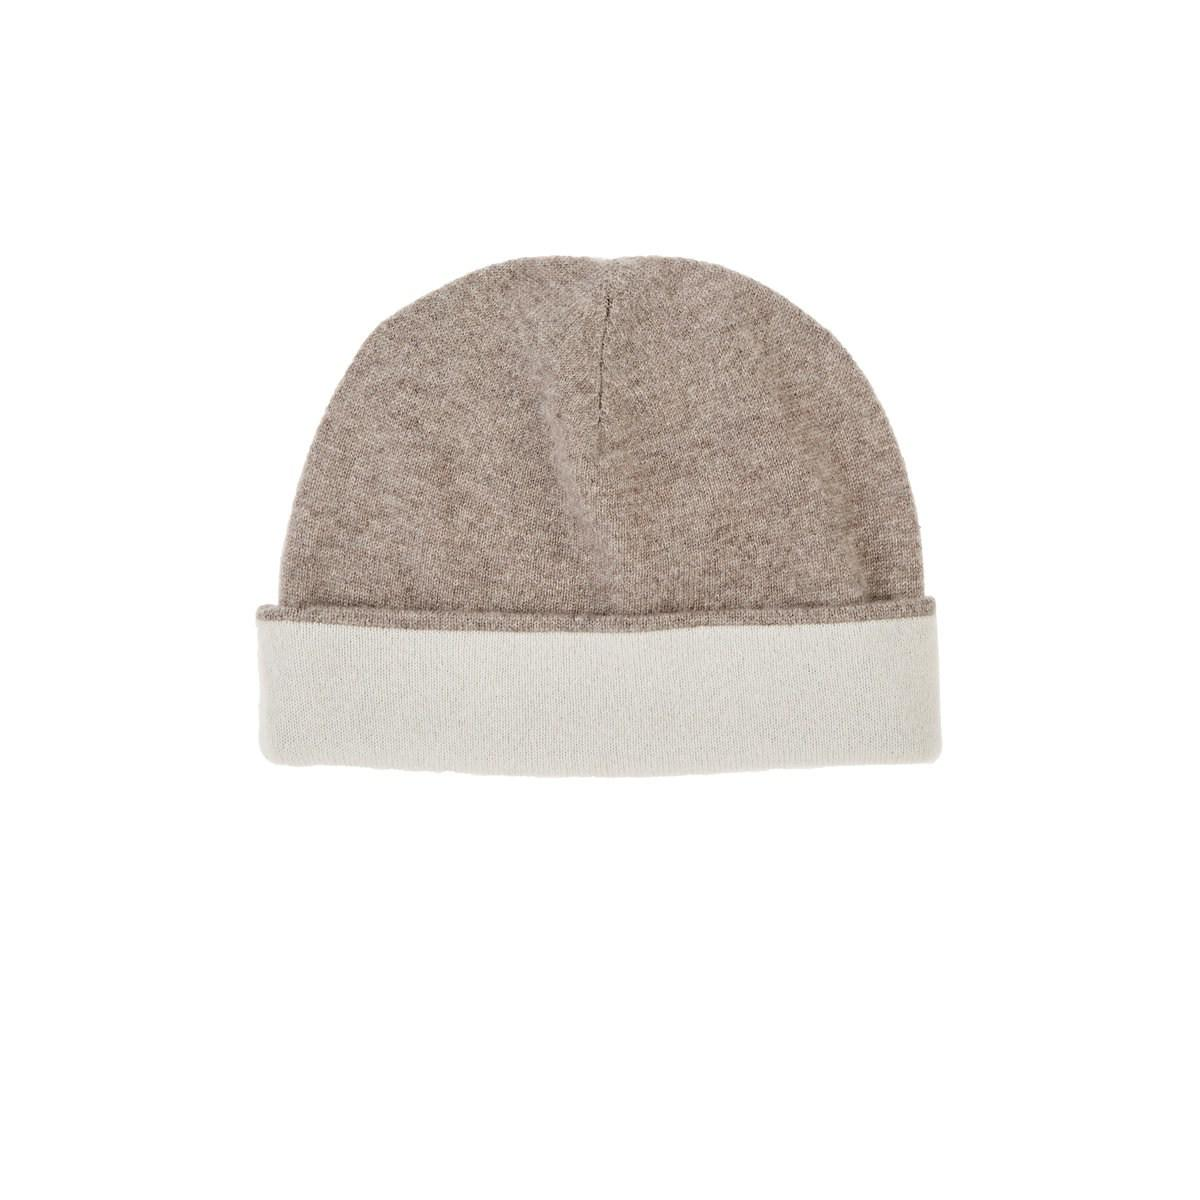 c5ae0e34032 Barneys New York Double-faced Cashmere Hat in Natural - Lyst